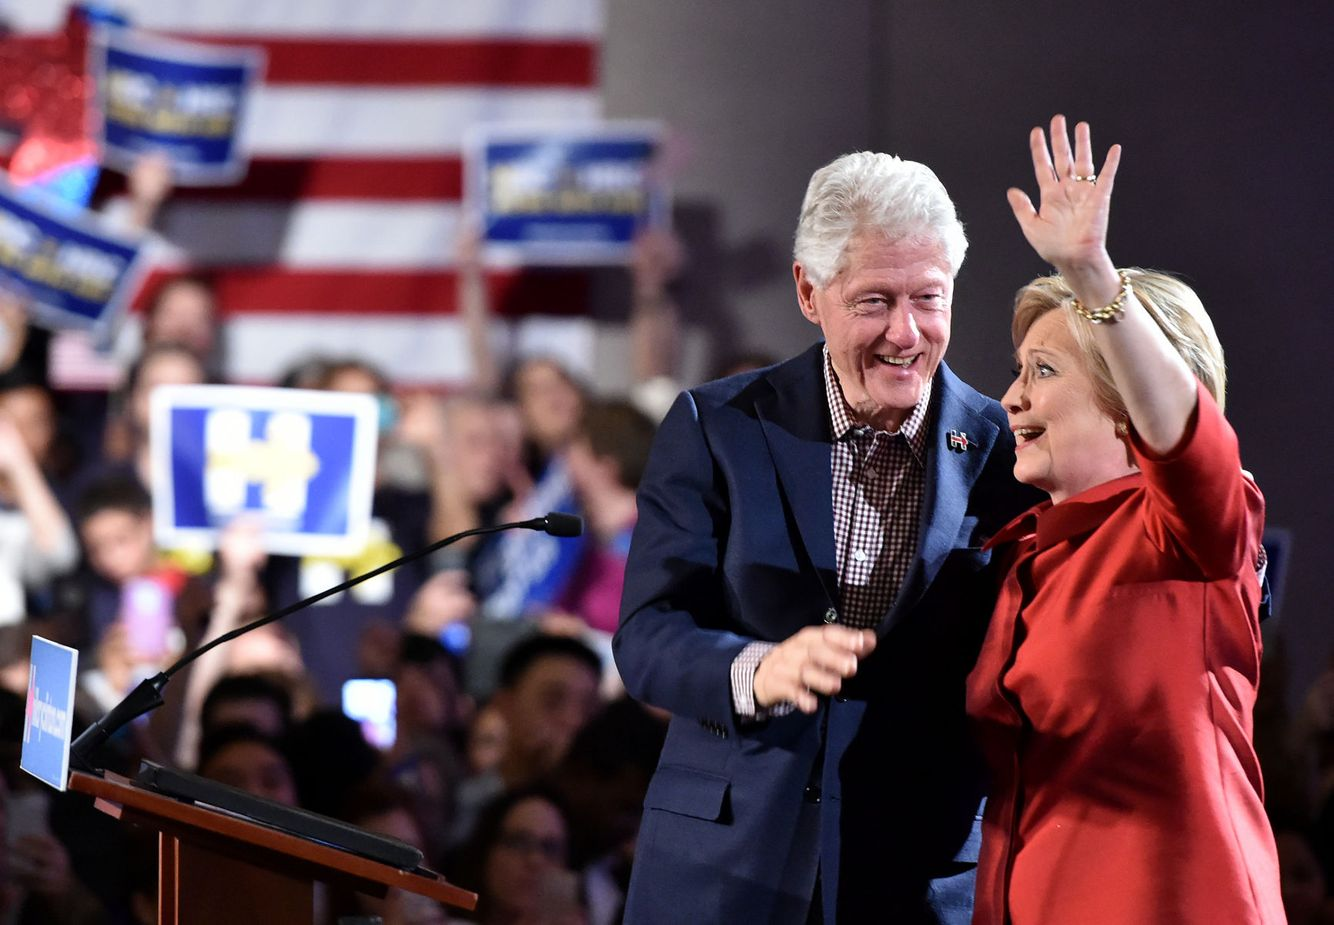 Hillary and Bill Clinton arrive for a campaign event in Las Vegas.